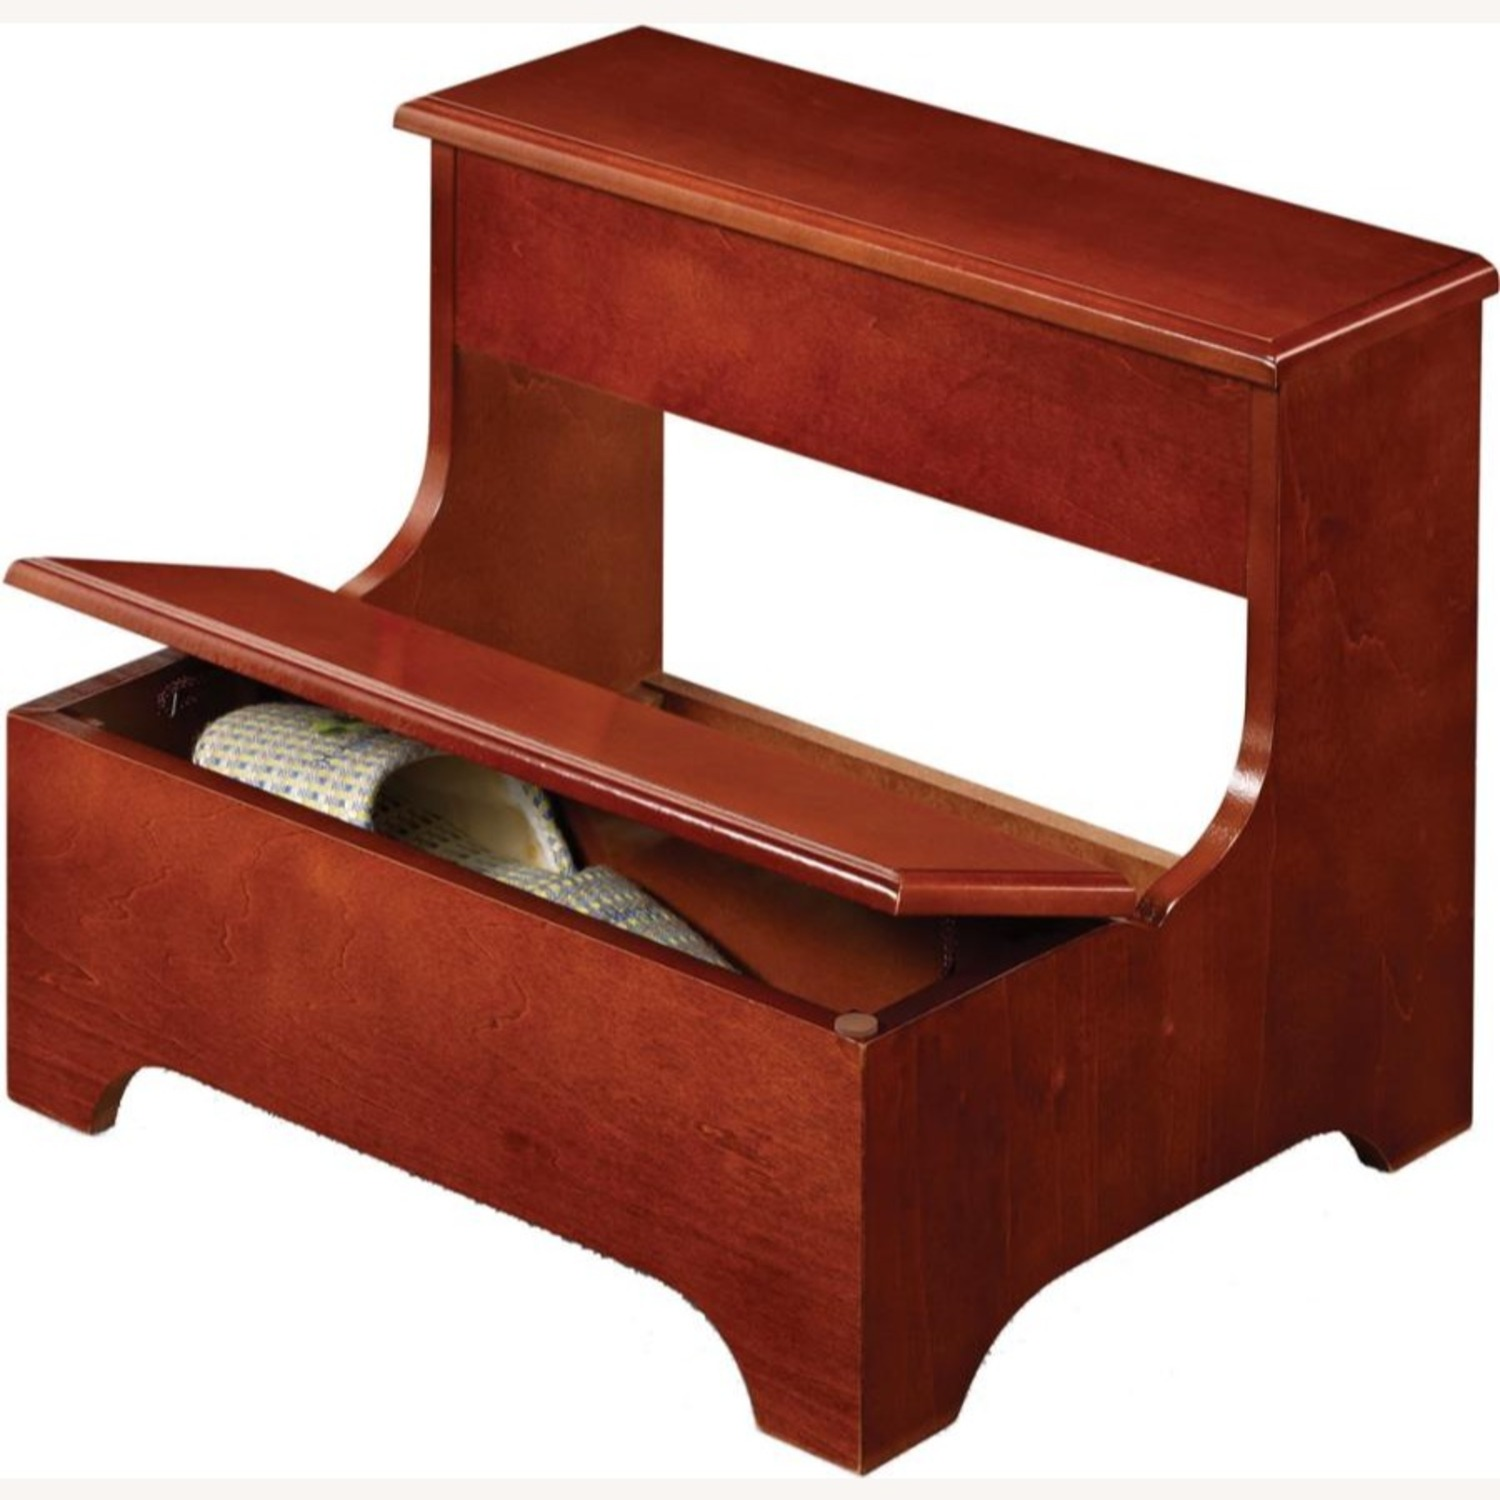 Two-Tier Step Stool In Brown Red Finish - image-1